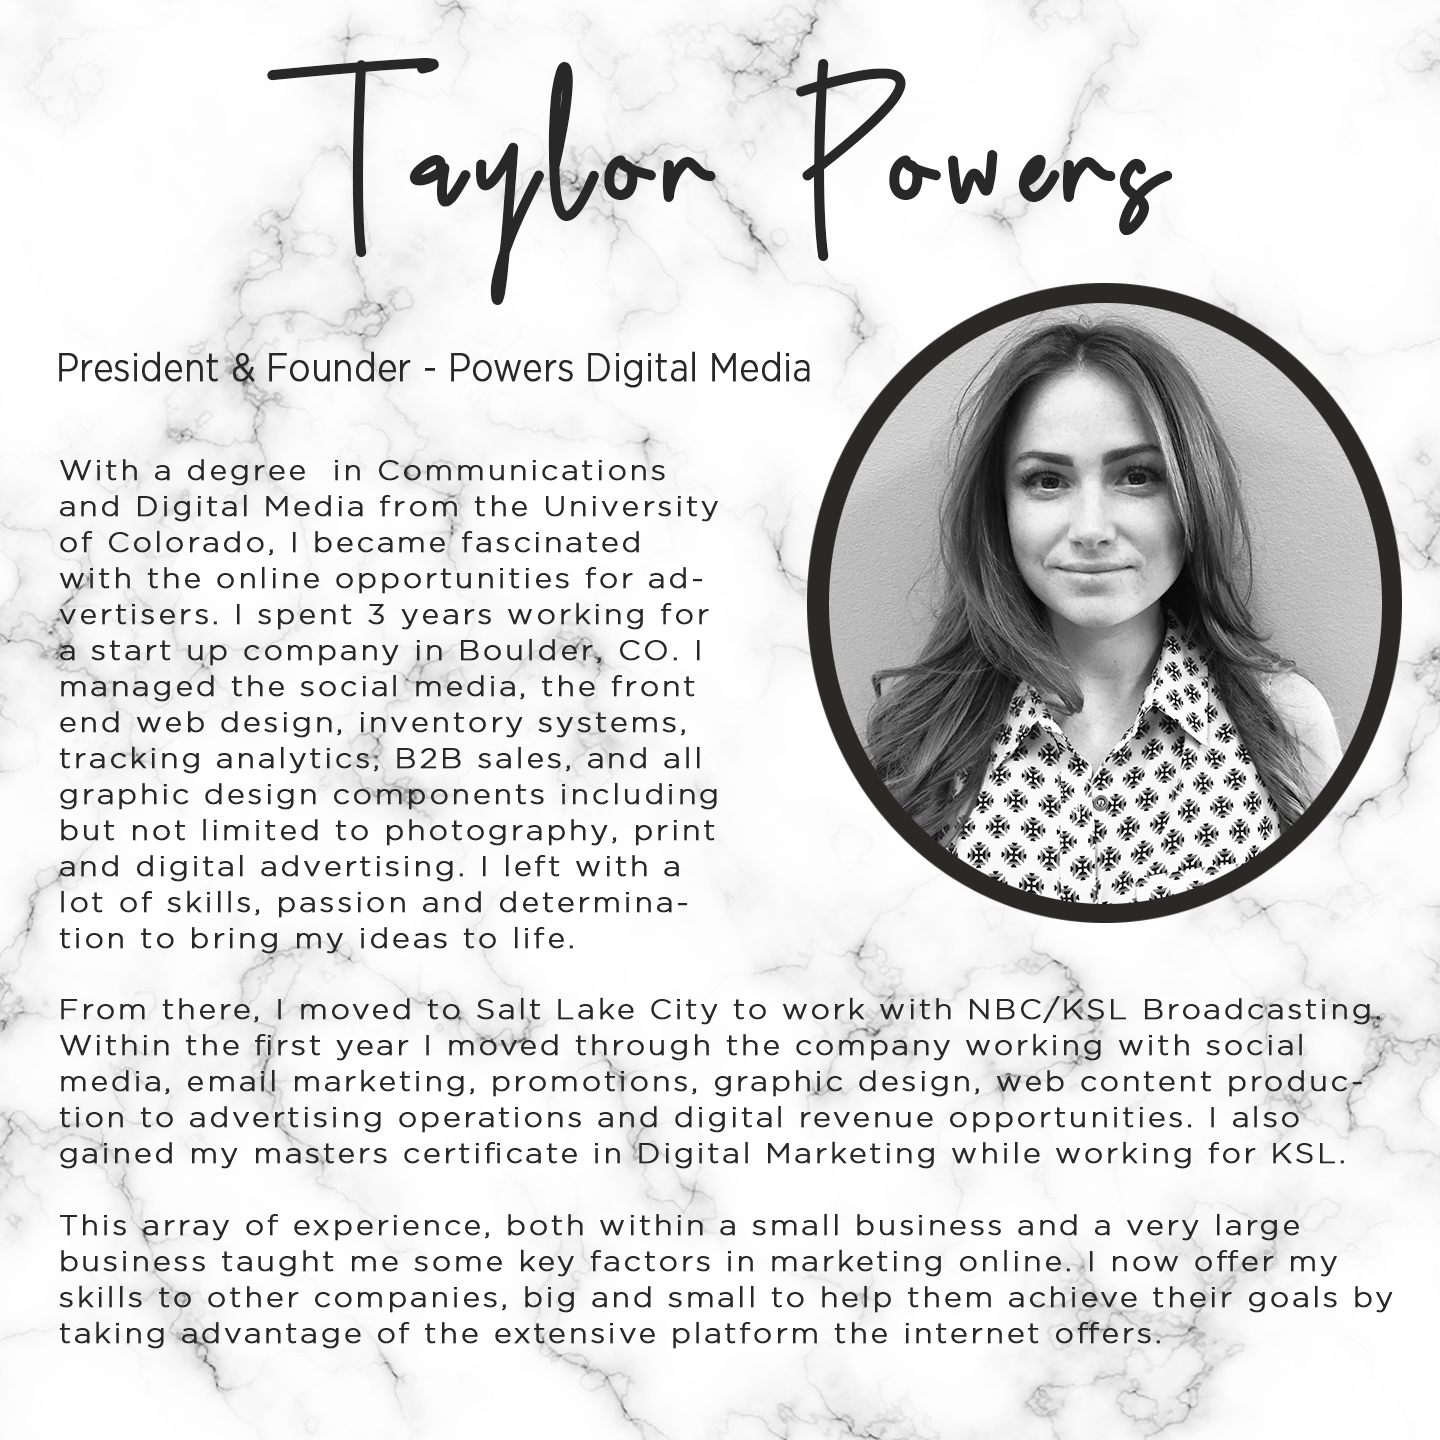 PDM-Powers-digital-media-taylor-powers